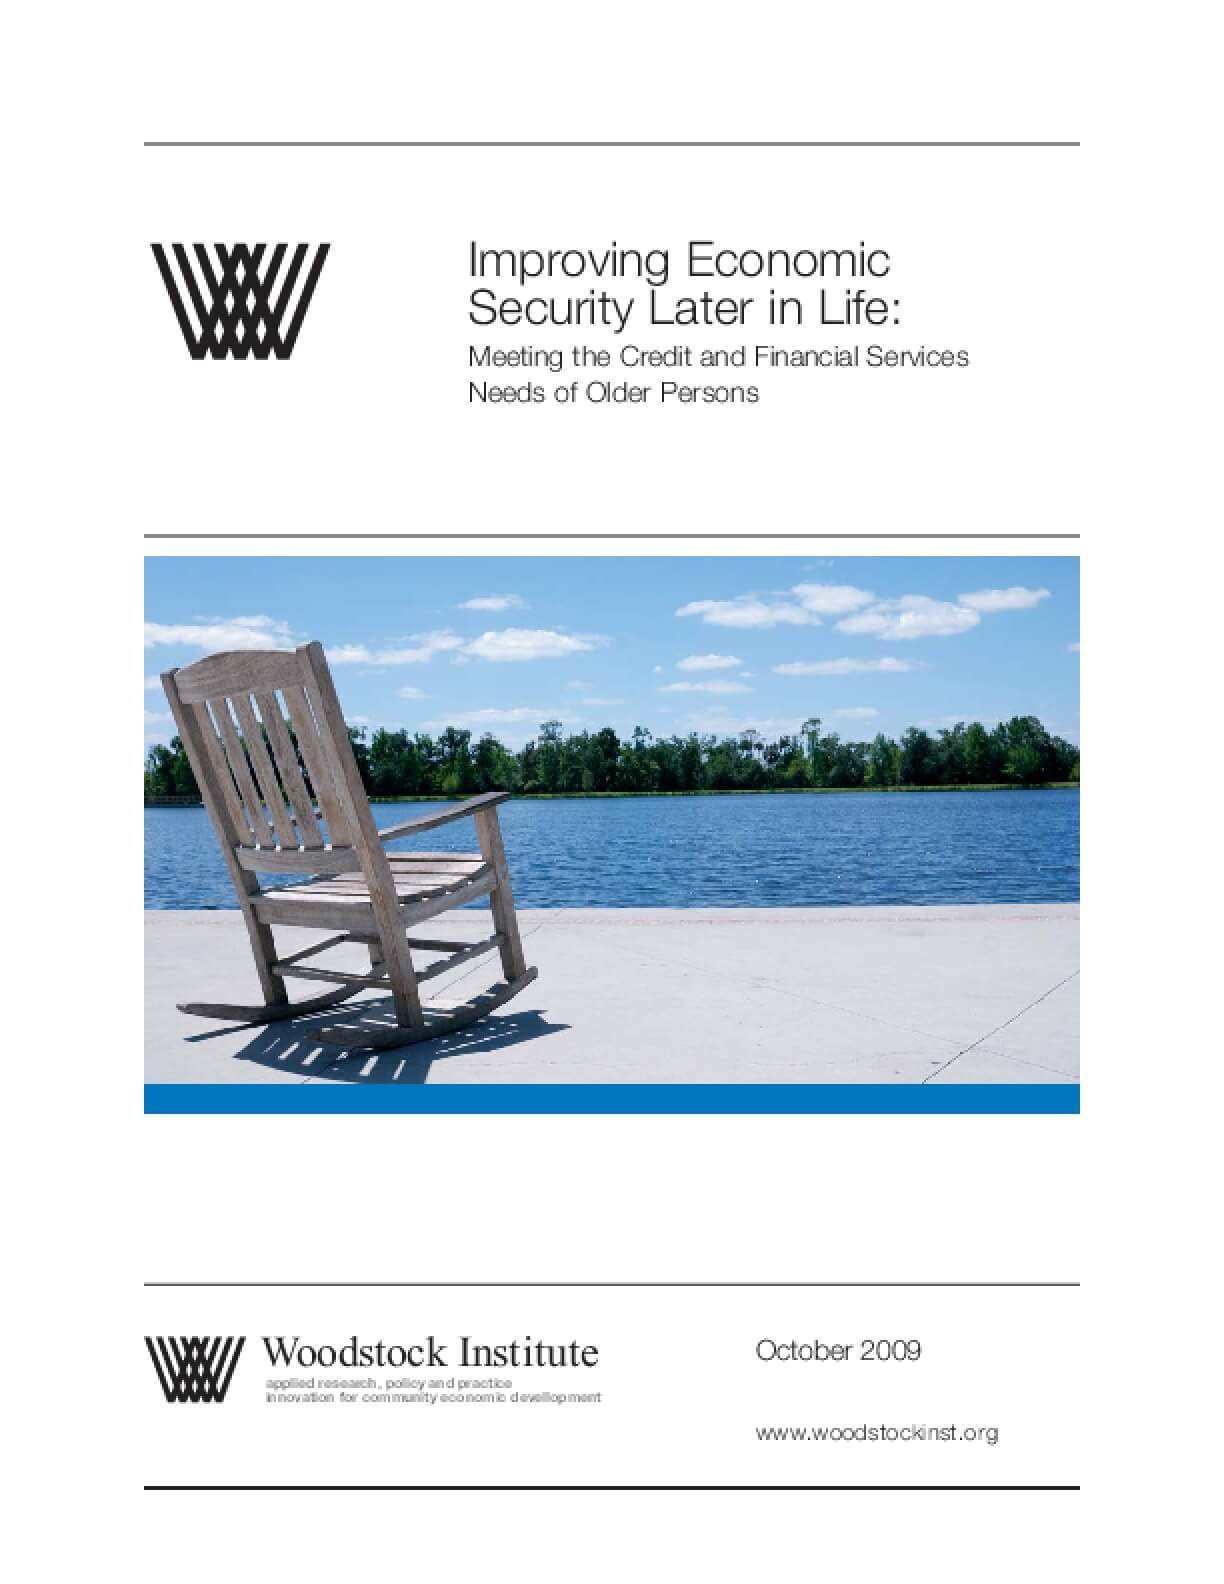 Improving Economic Security Later in Life: Meeting the Credit and Financial Services Needs of Older Persons